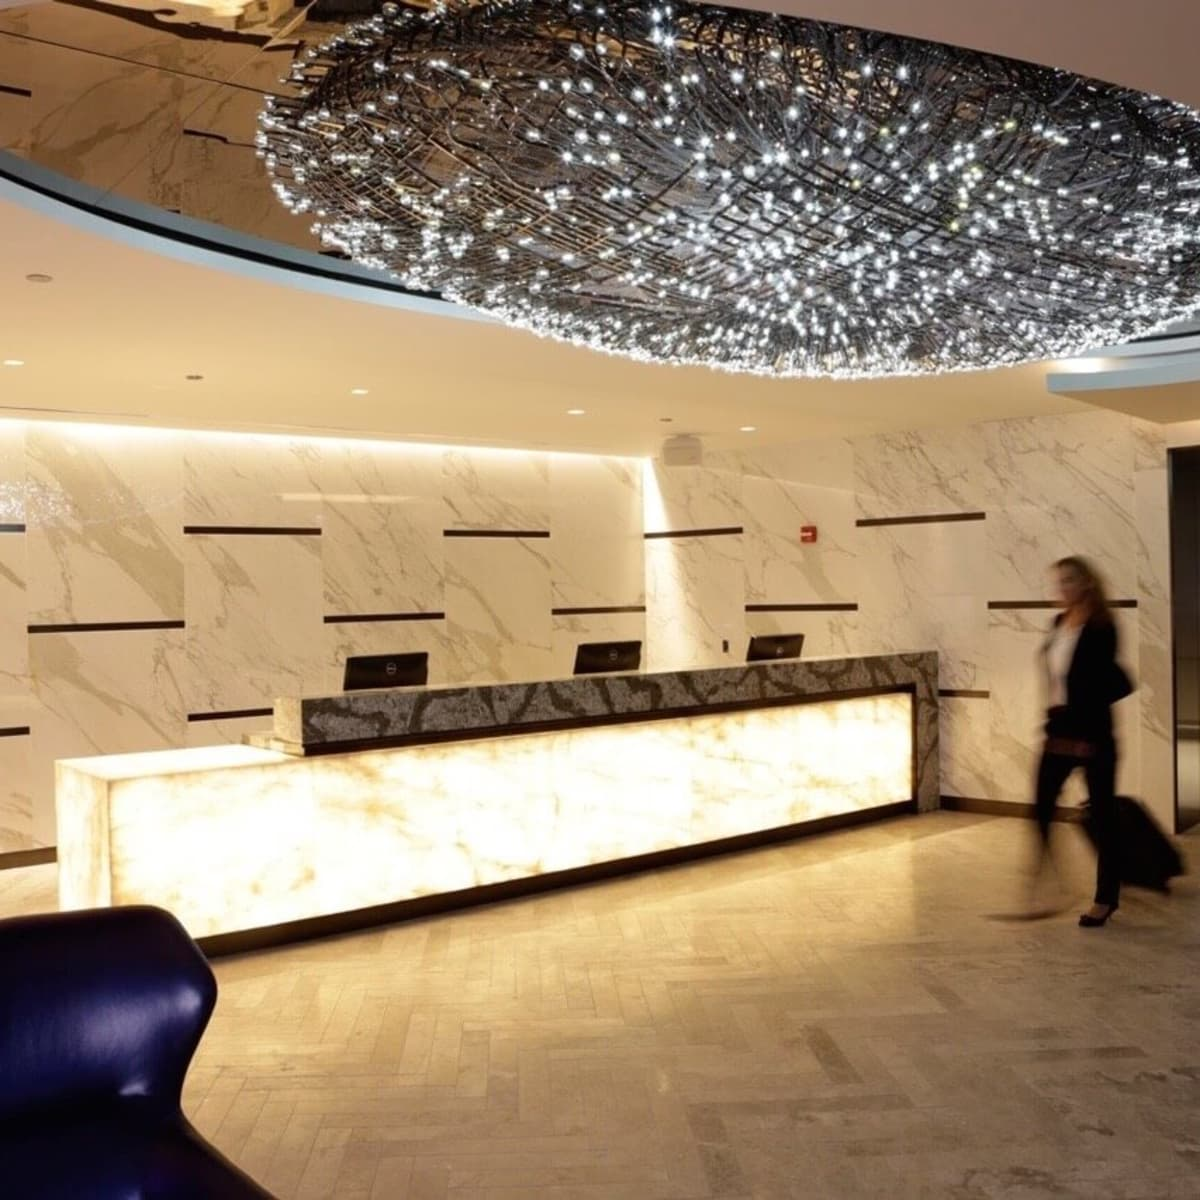 United Polaris lounged in Chicago